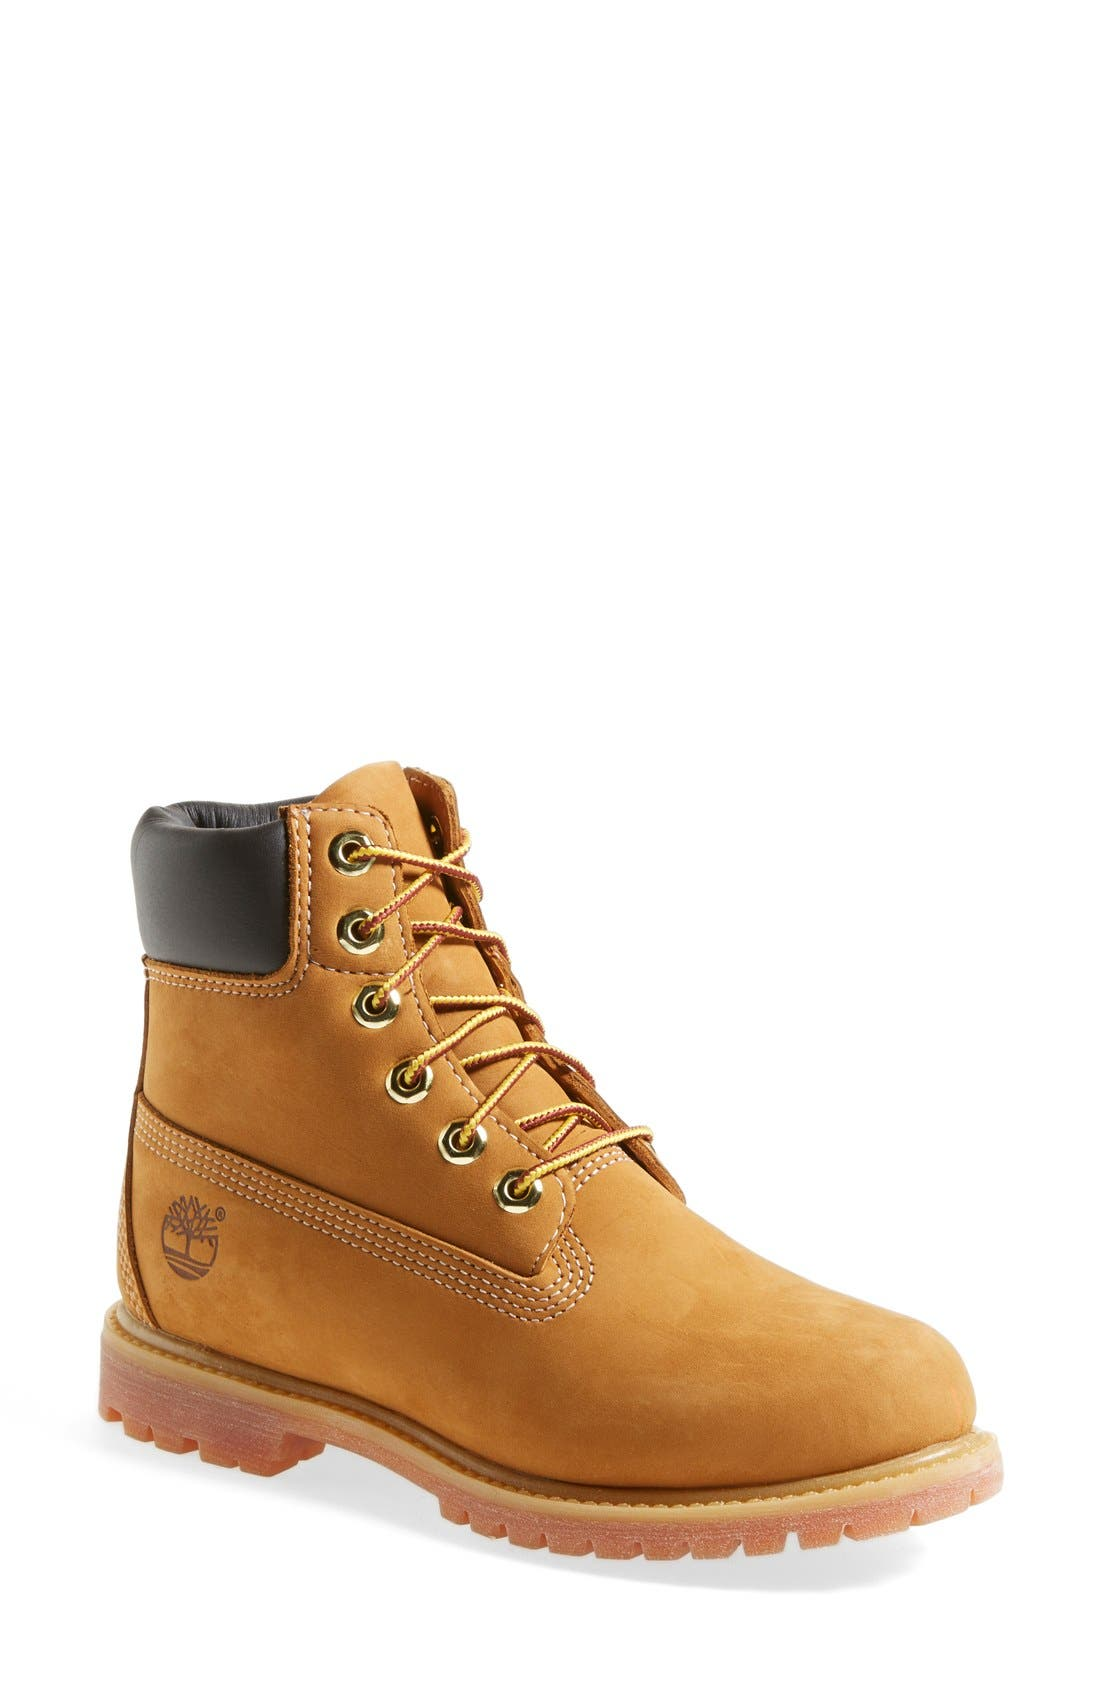 Timberland 6 Inch Premium Waterproof Boot, Metallic